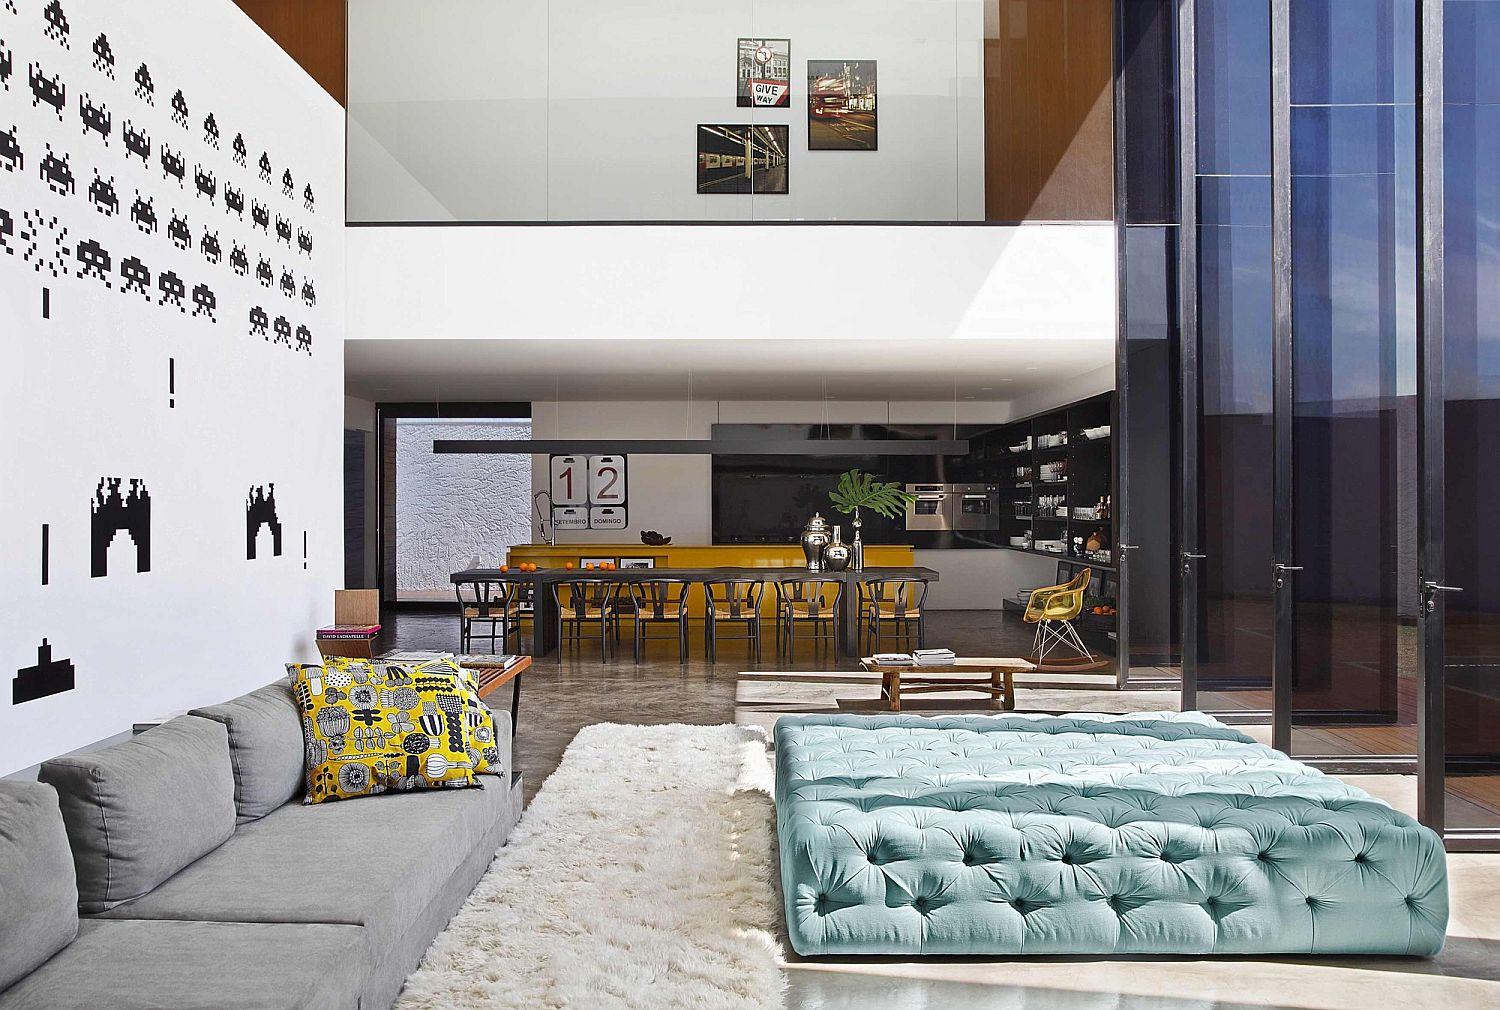 Spacious-lower-level-living-area-with-modular-seating